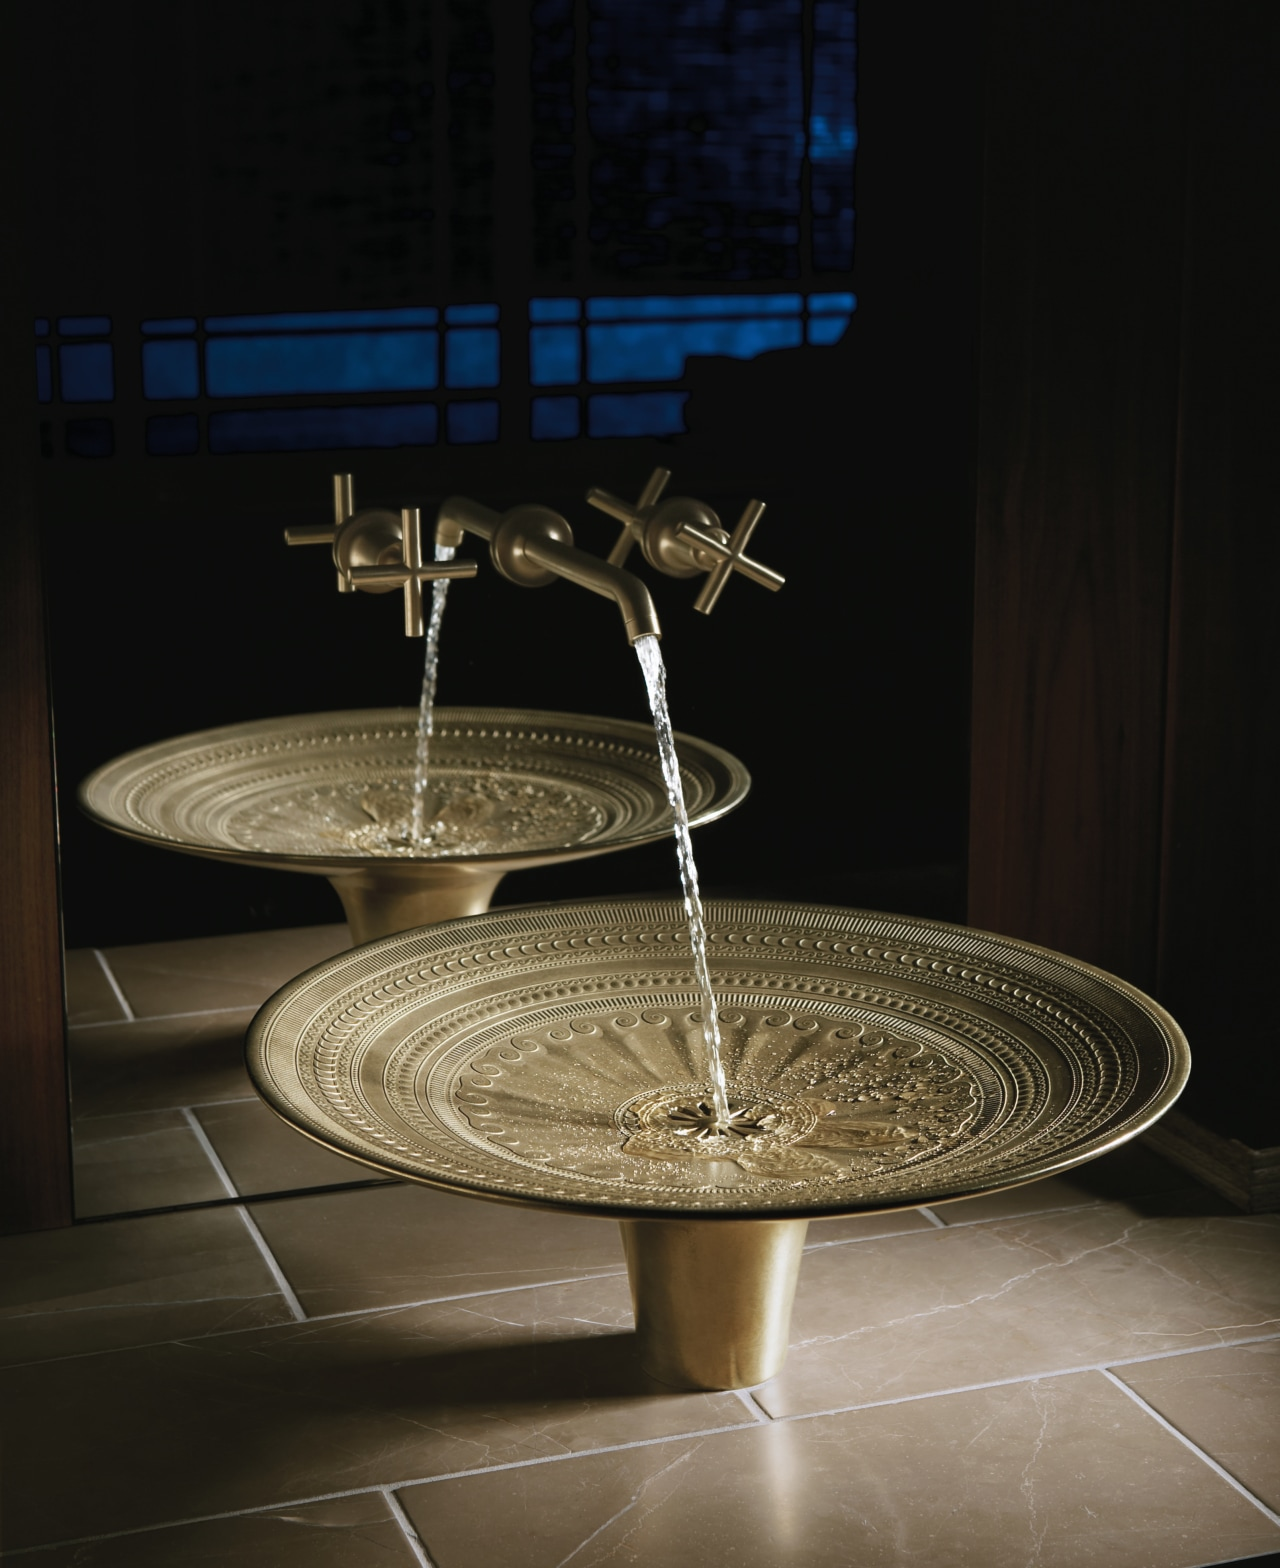 Kohlers new Kamala bronze sink is available from plumbing fixture, product design, sink, table, black